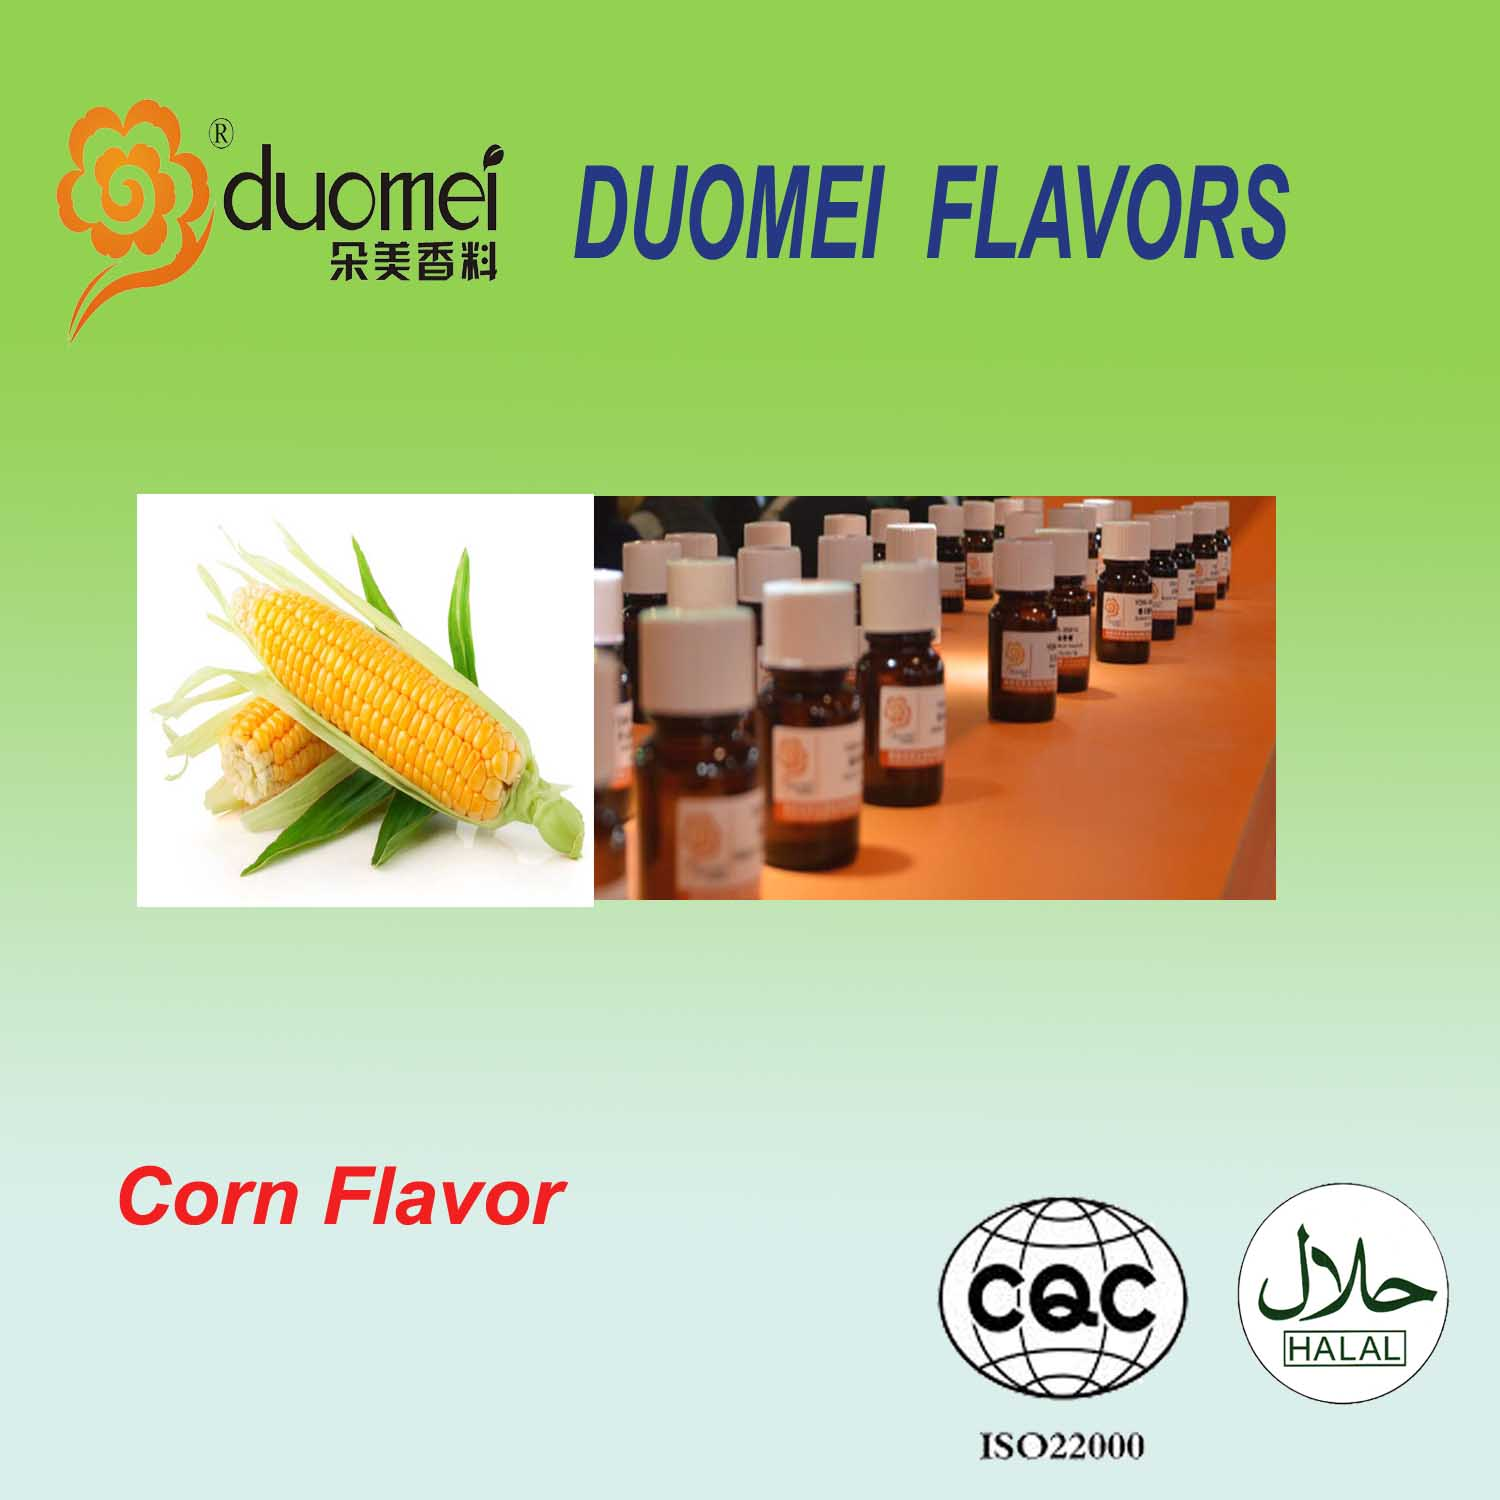 DMC-51116 flavoring powder for popcorn